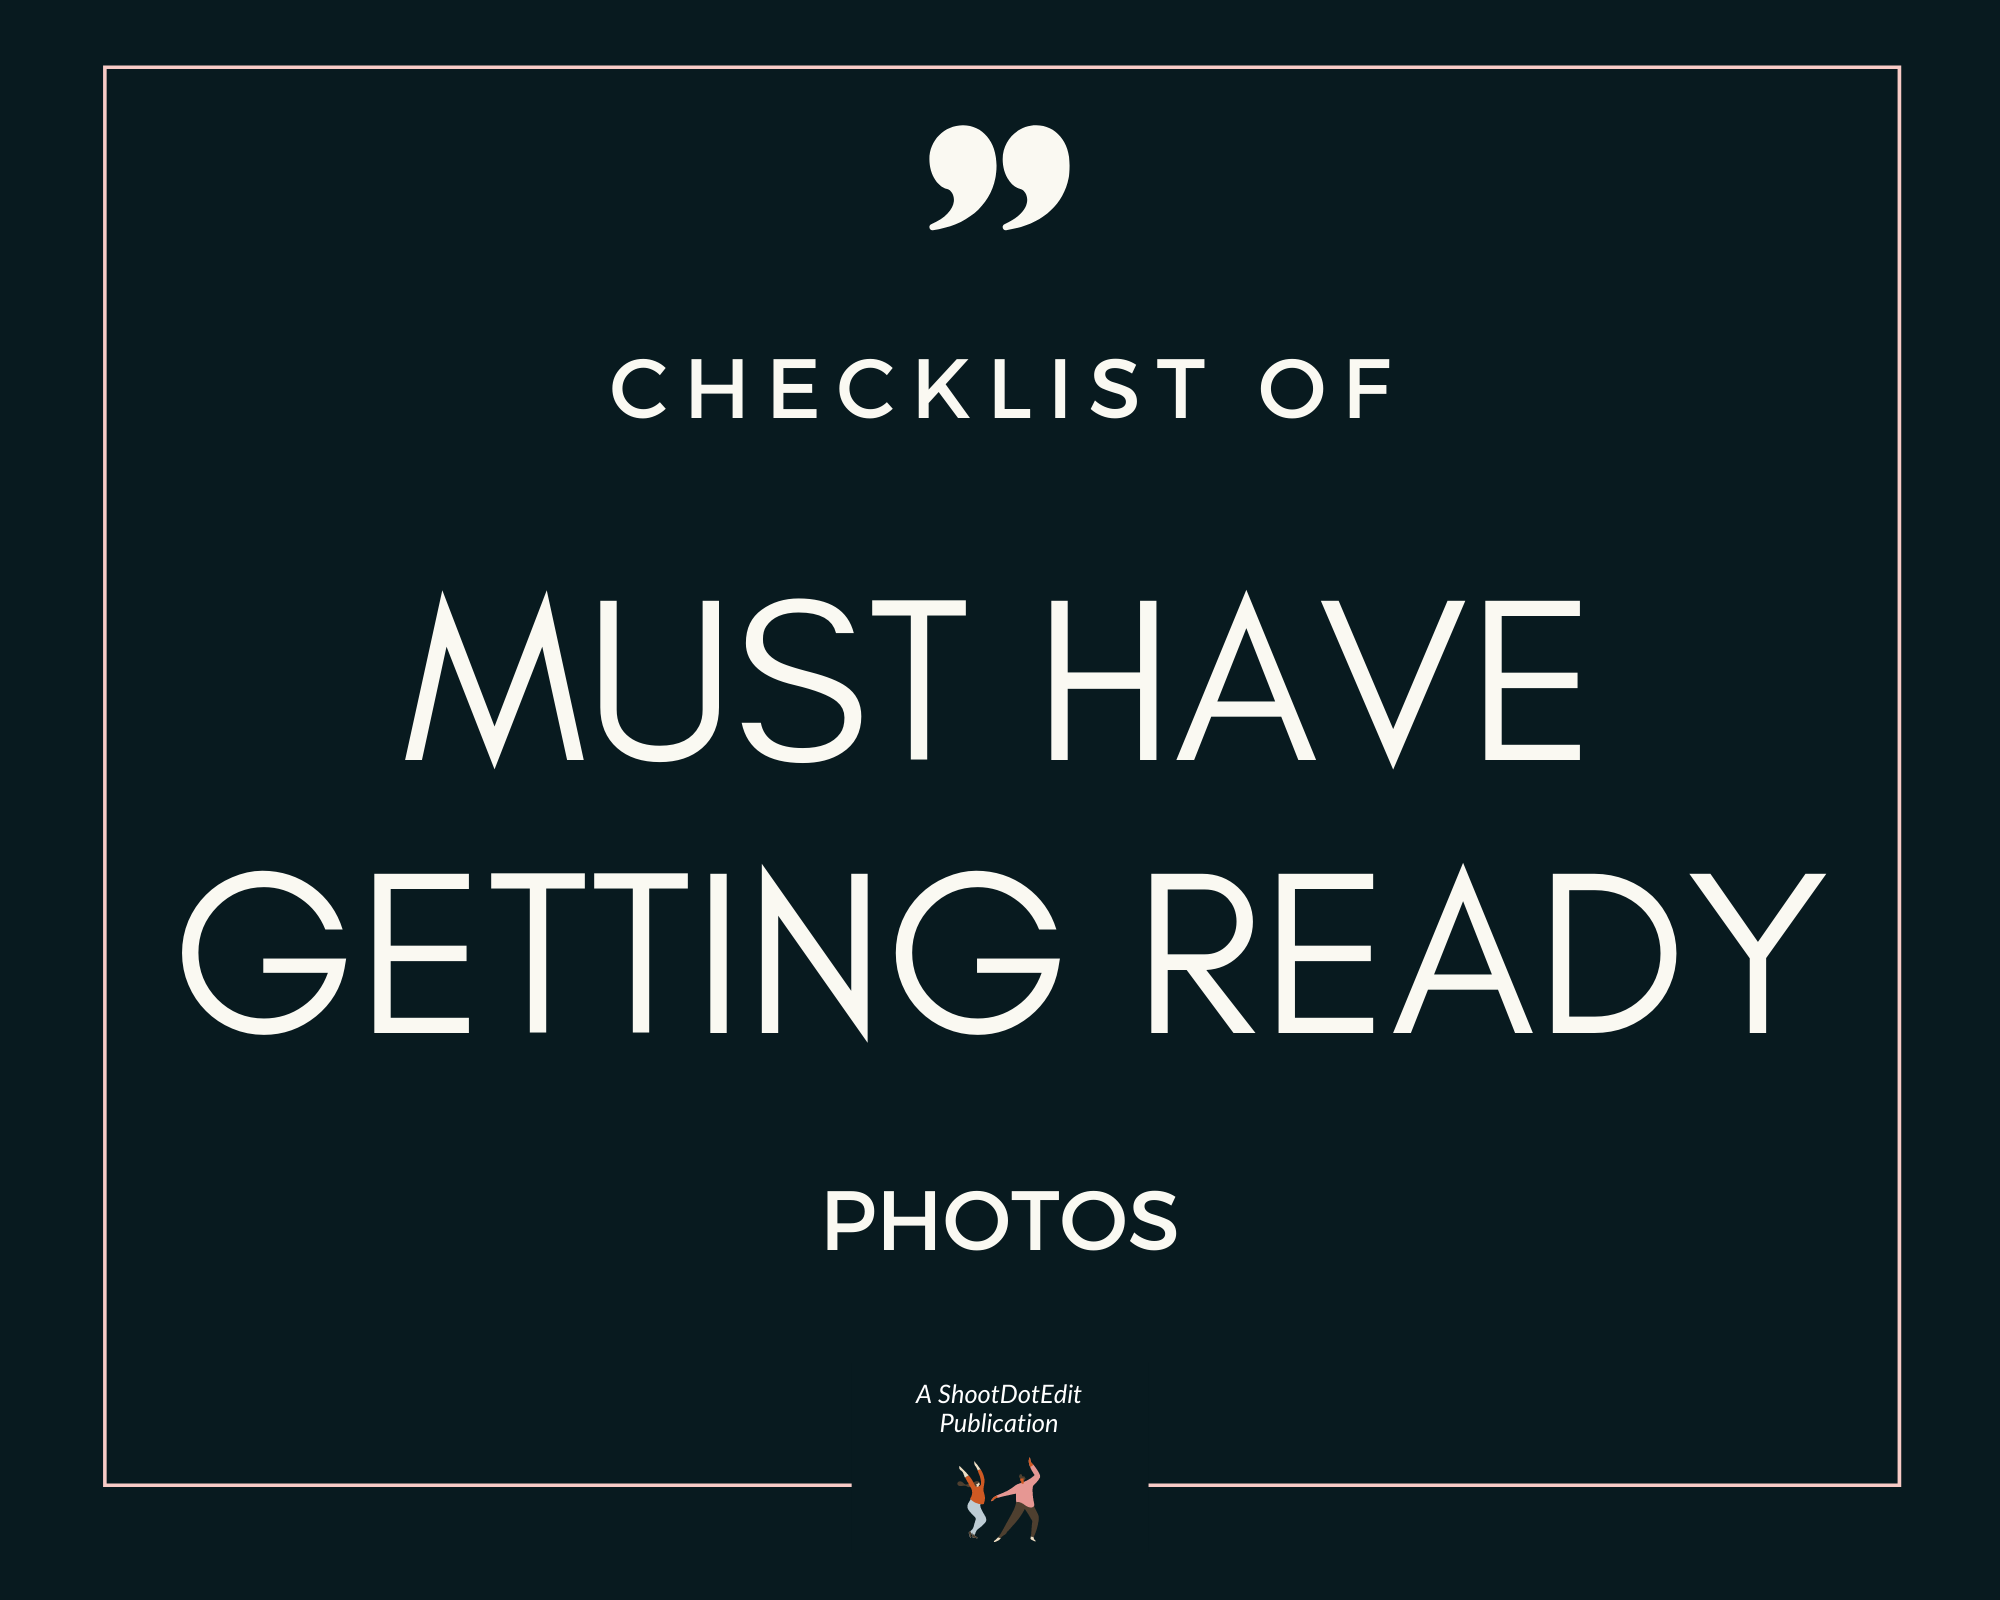 Infographic stating checklist of must have getting ready photos